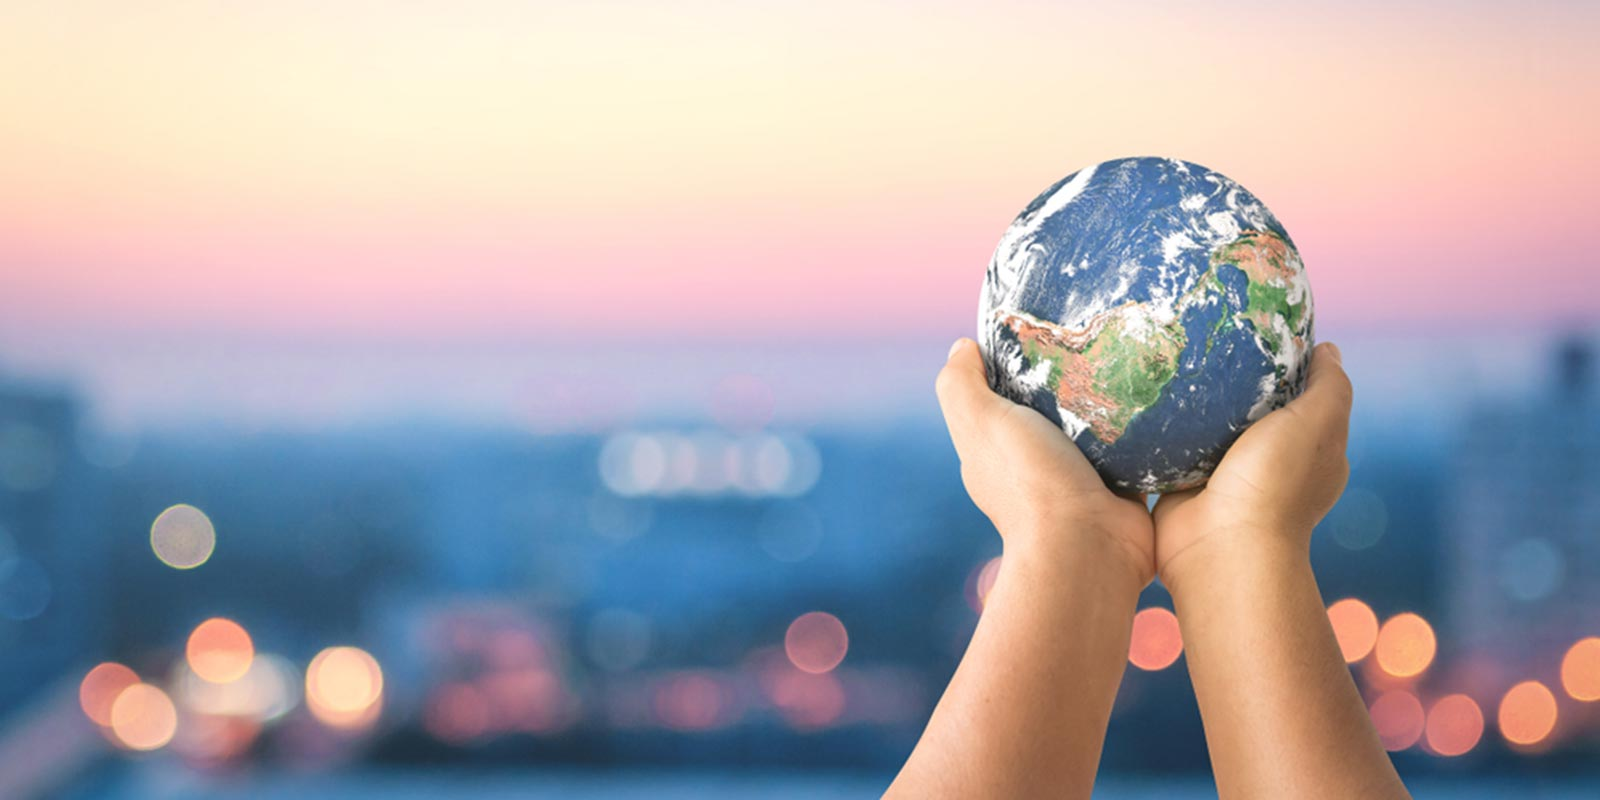 Hands holding earth globe sharing your gifts